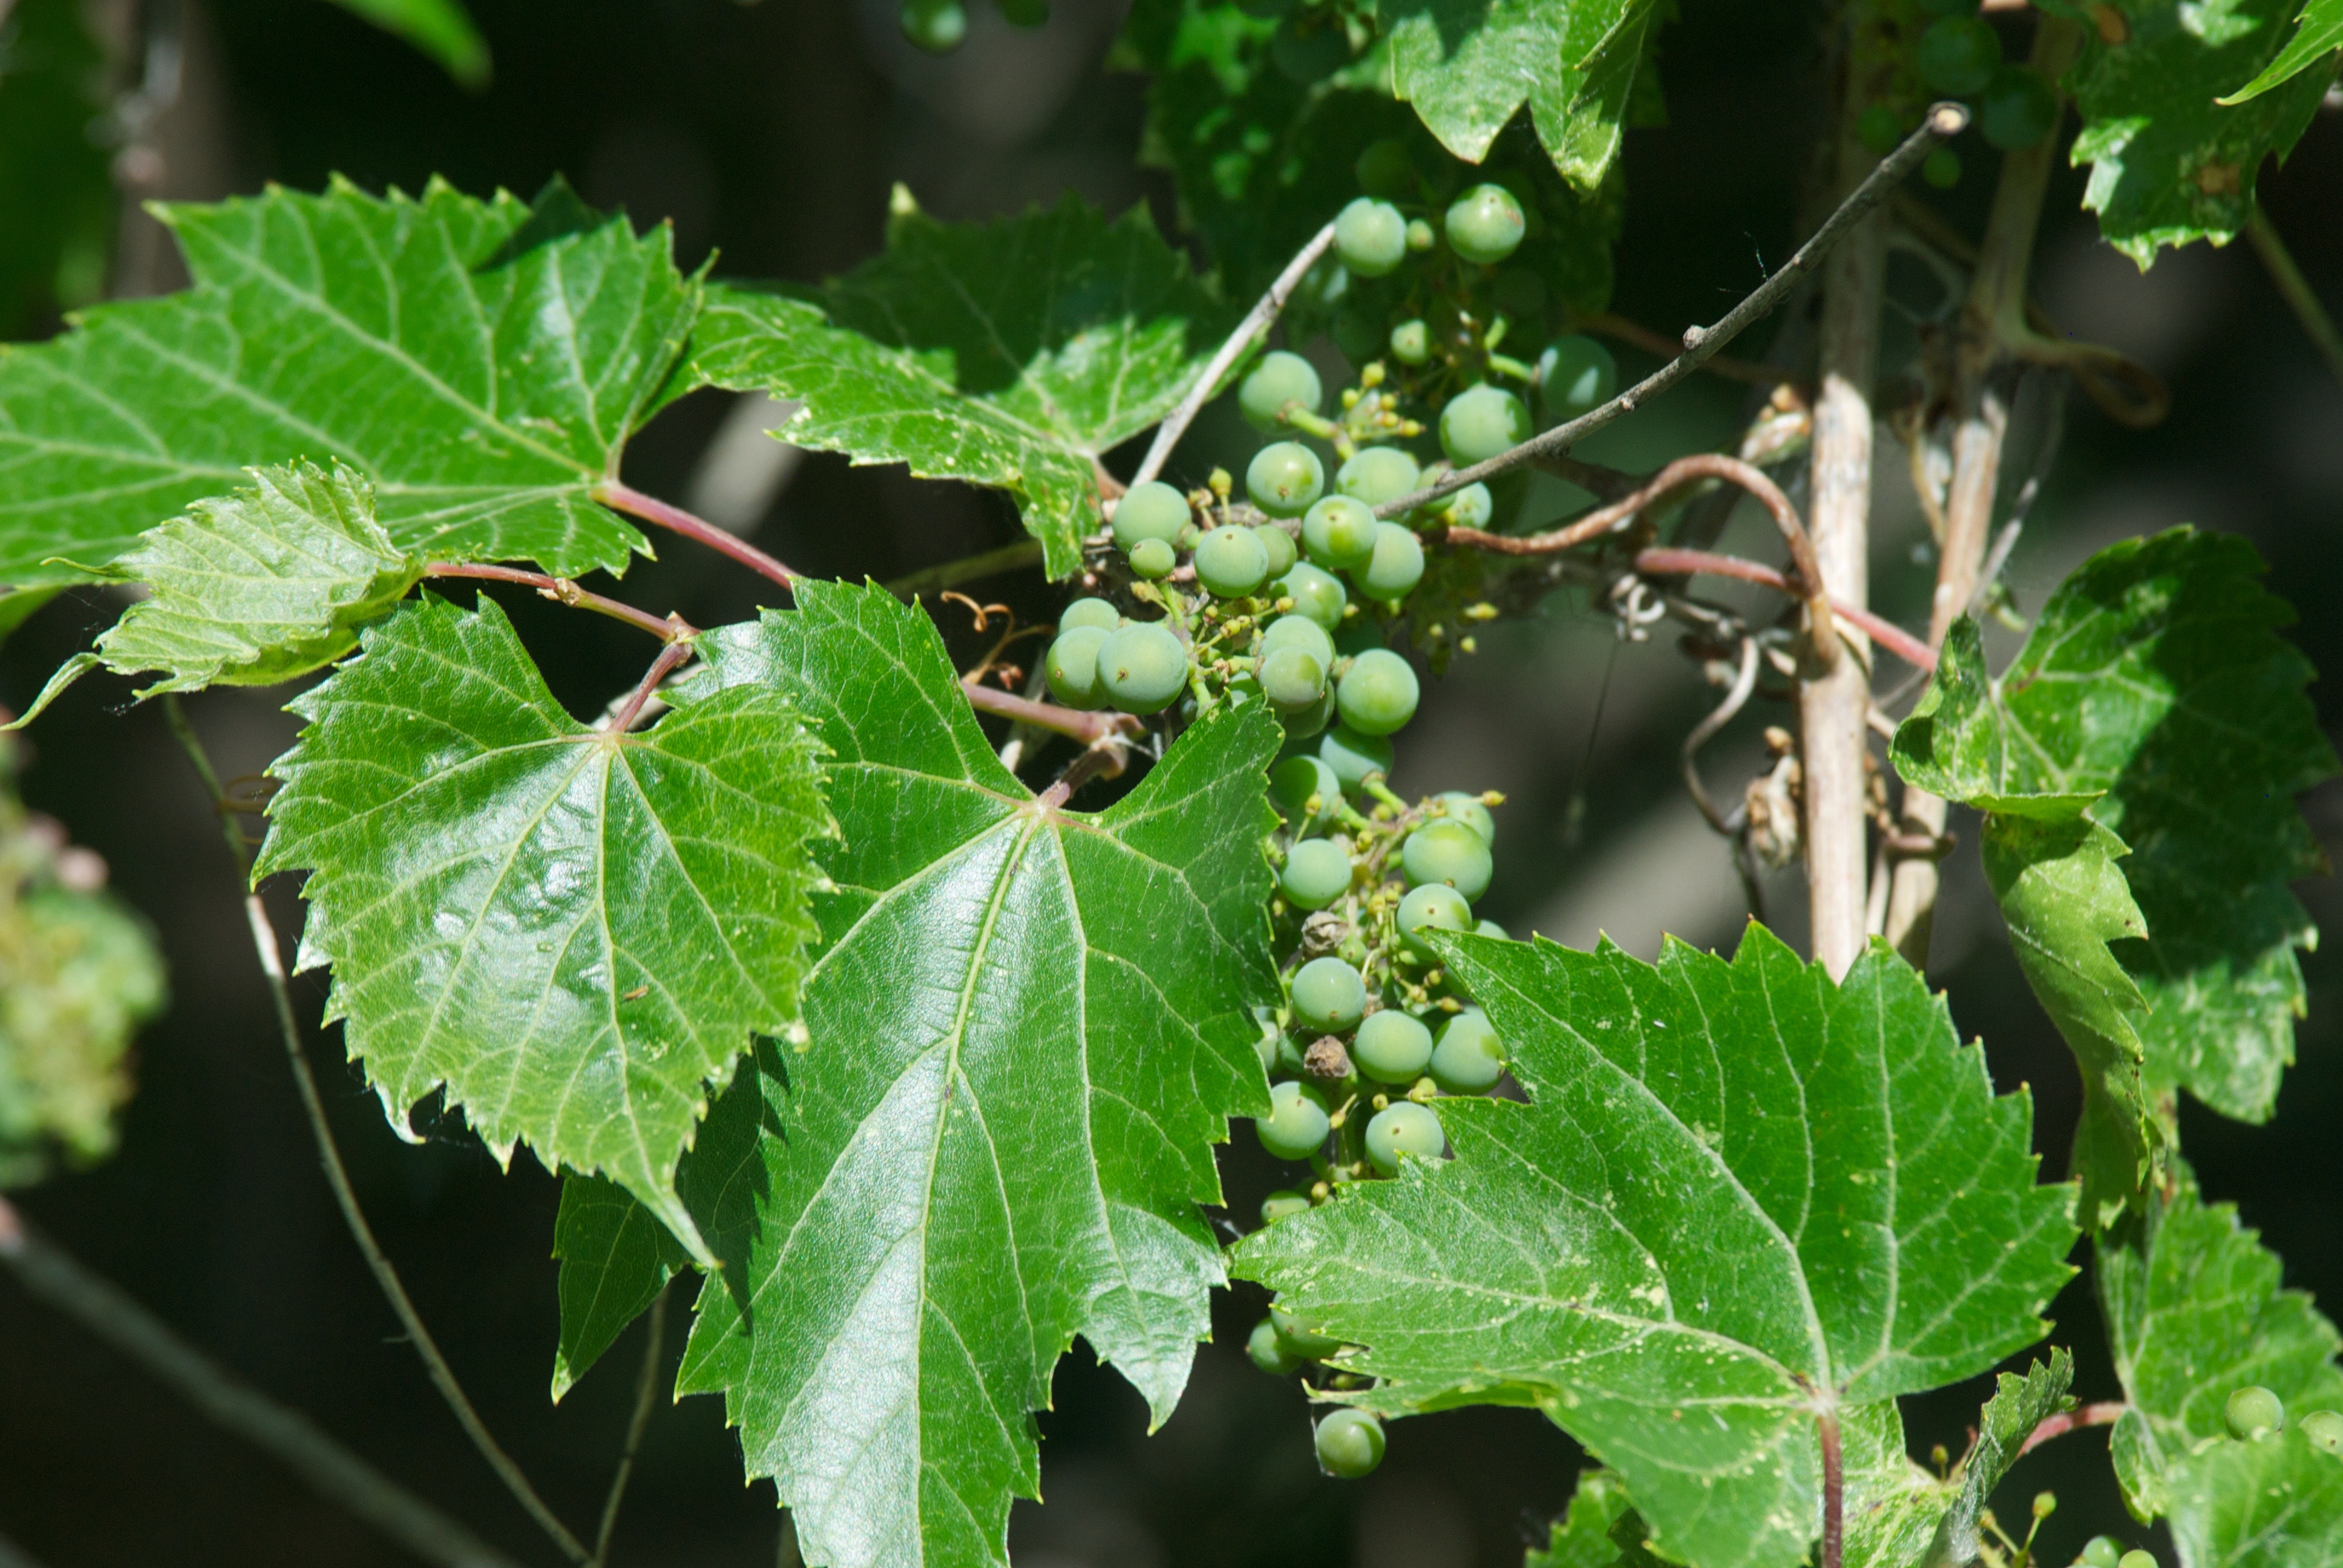 Grapes at the River